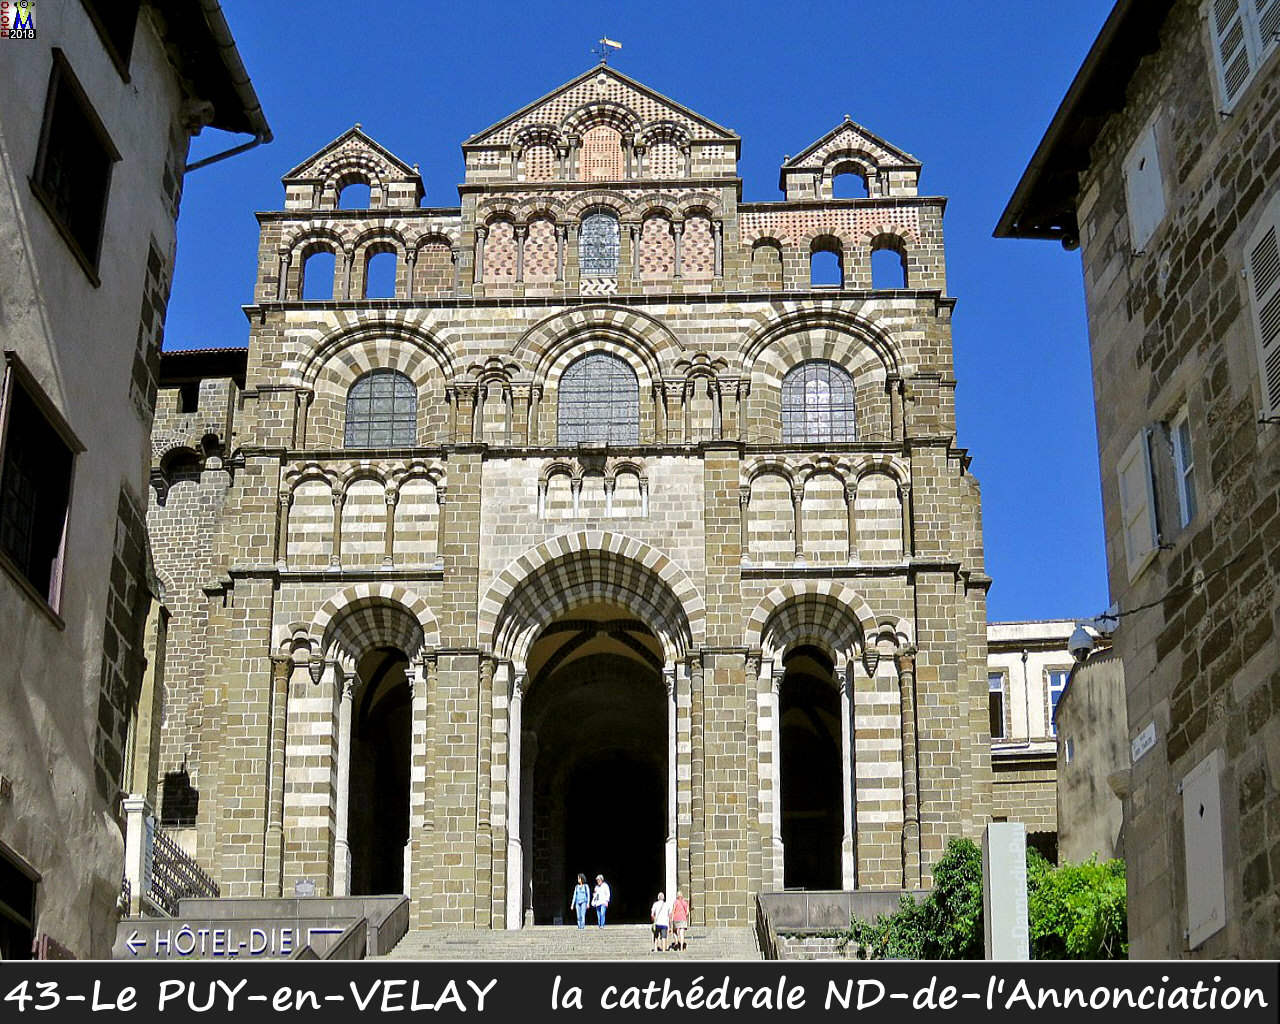 43PUY-EN-VELAY_cathedrale_114.jpg